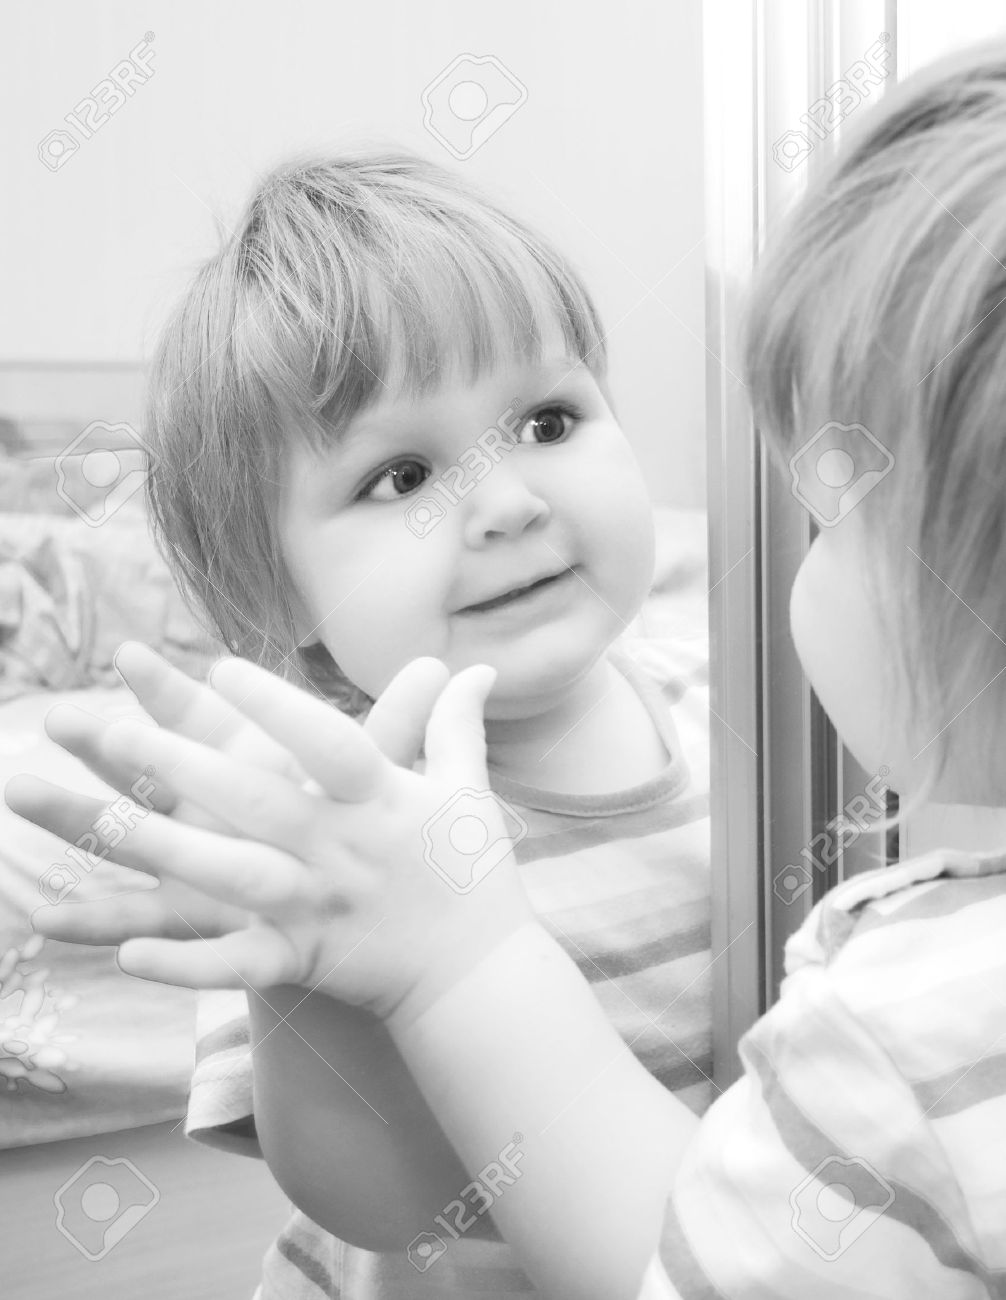 A girl looks in the mirror. Black and White image of baby. Stock Photo - 10861716